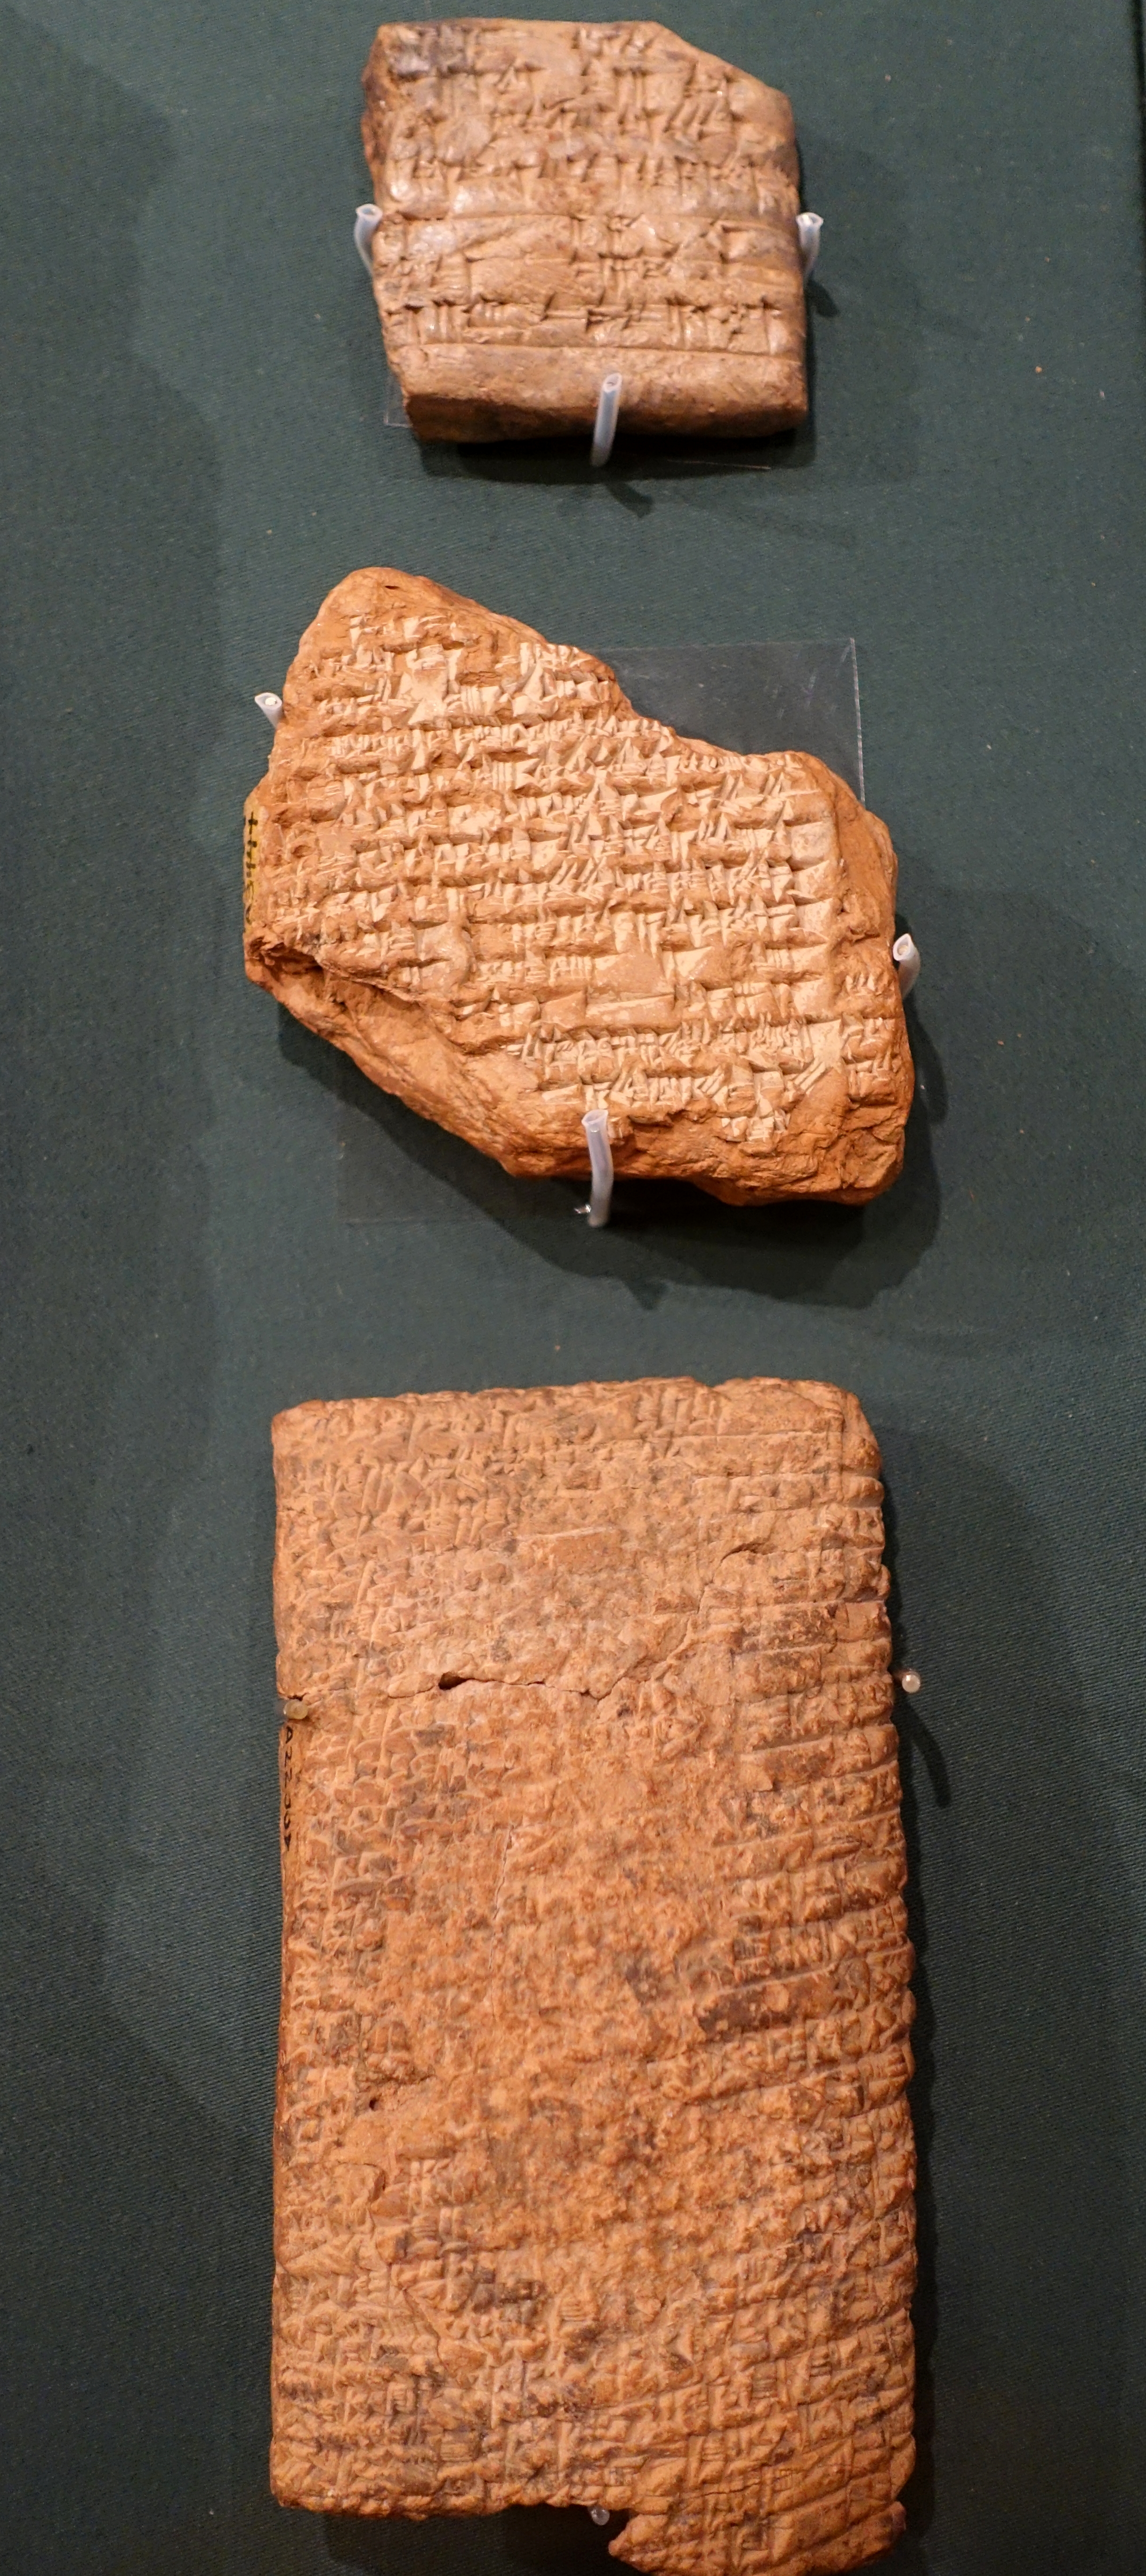 3 Tablets from the Epic of Gilgamesh